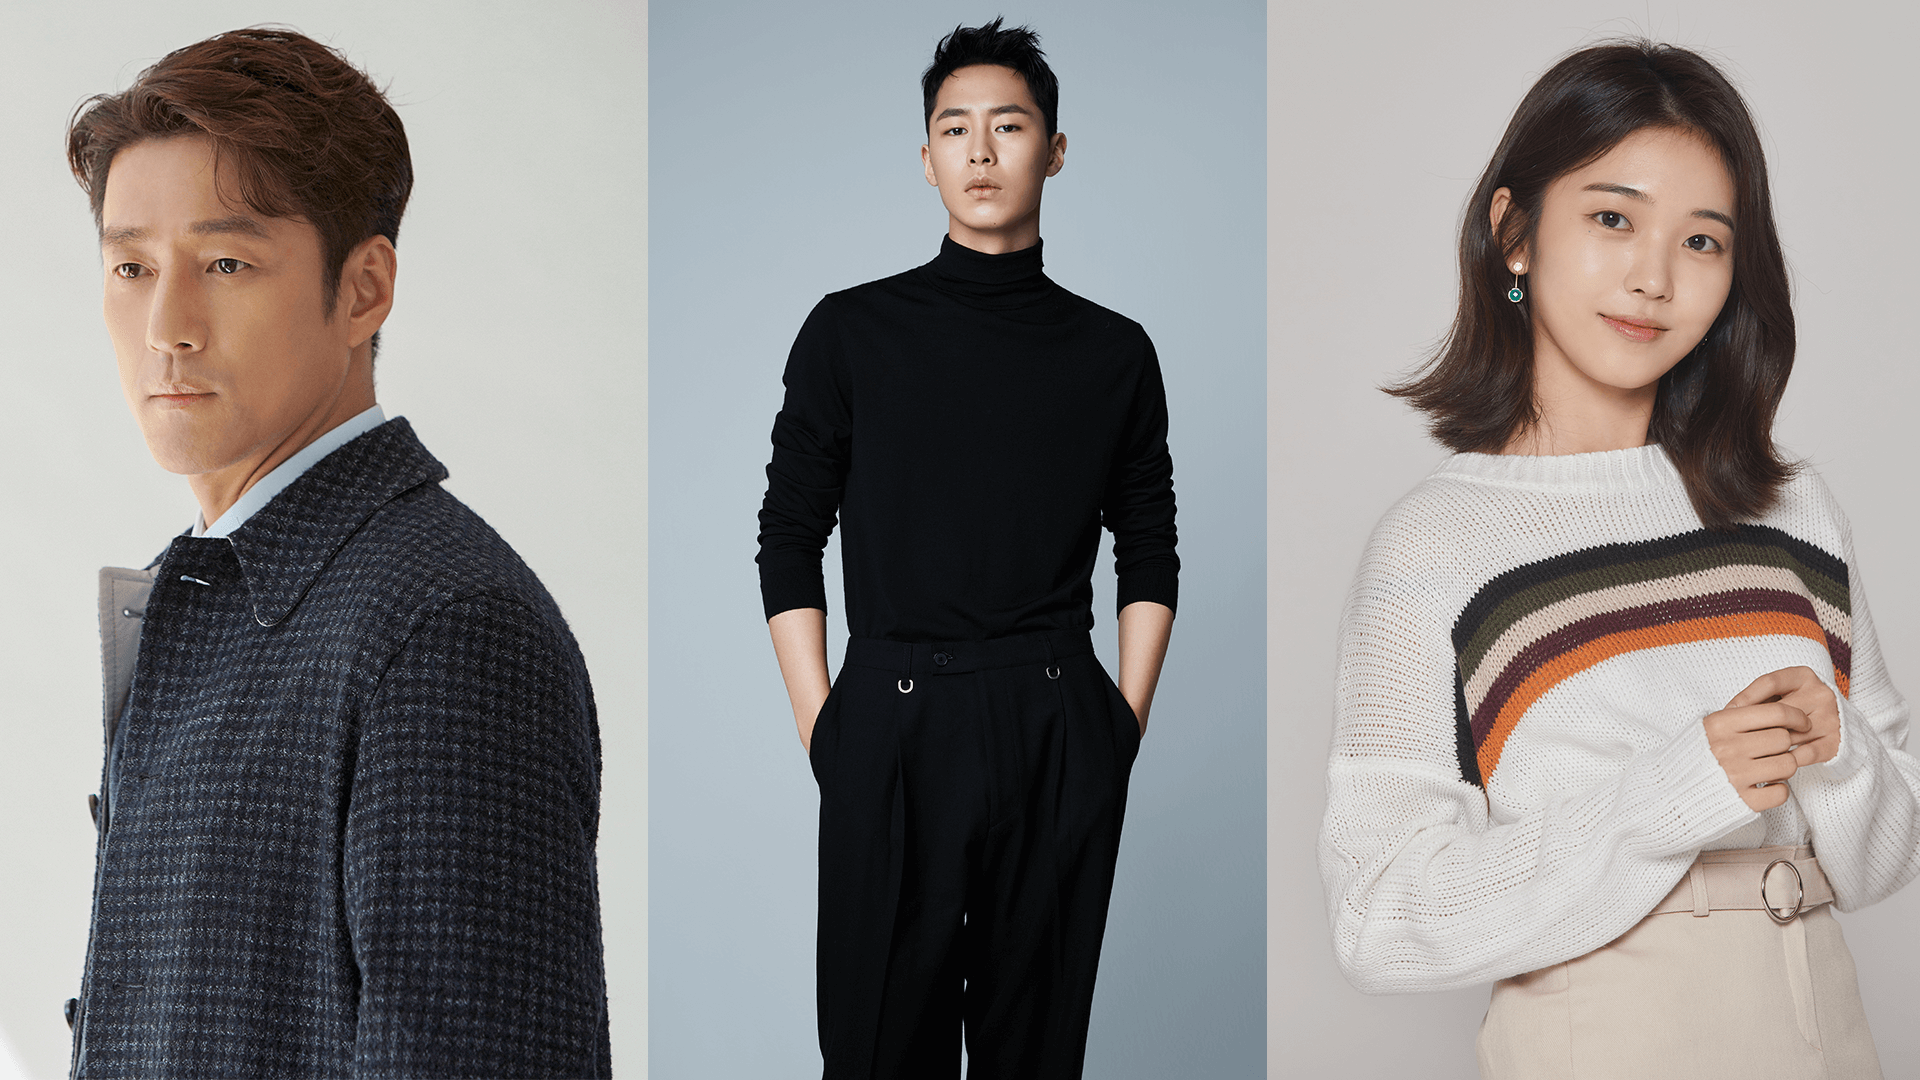 Netflix Announces the Cast for the New K-Drama Original 'Move To Heaven'